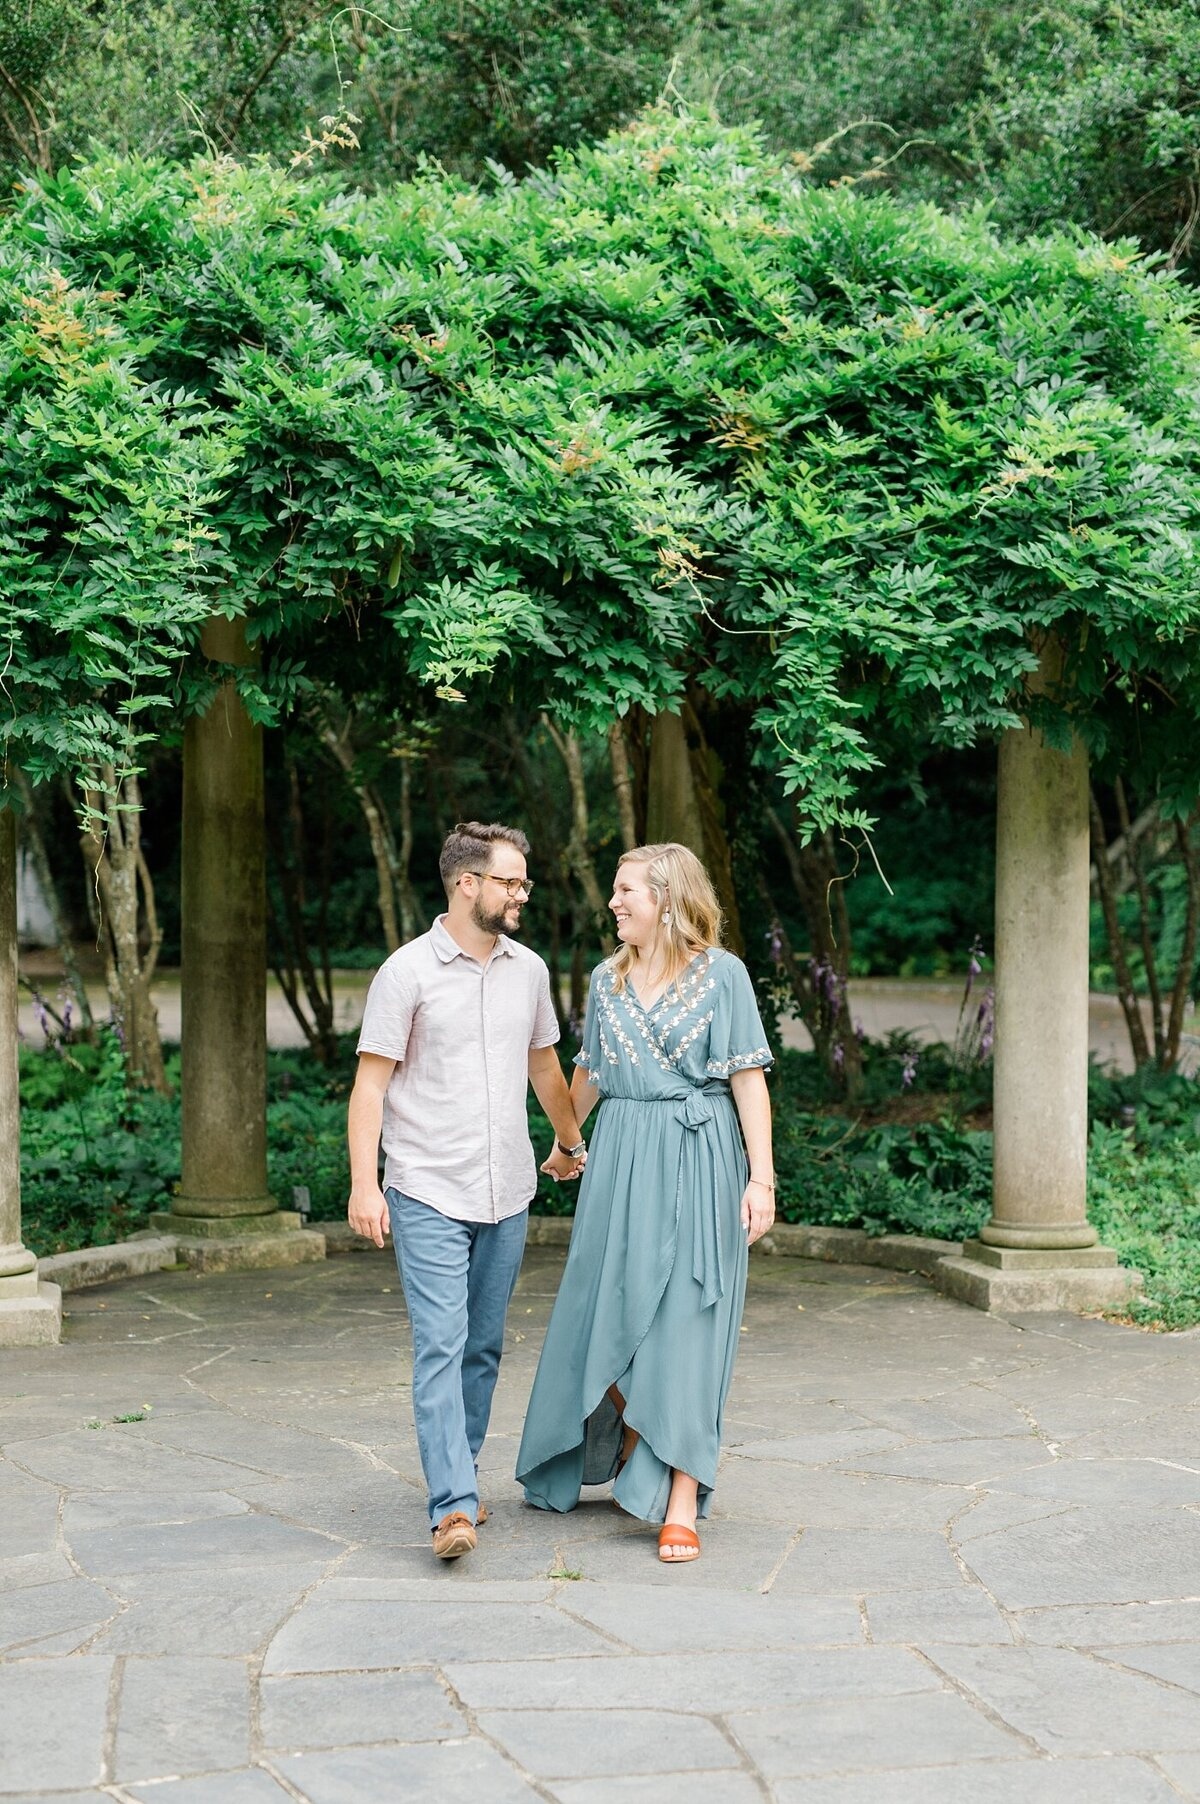 cator-woolford-gardens-engagement-wedding-photographer-laura-barnes-photo-shackelford-34